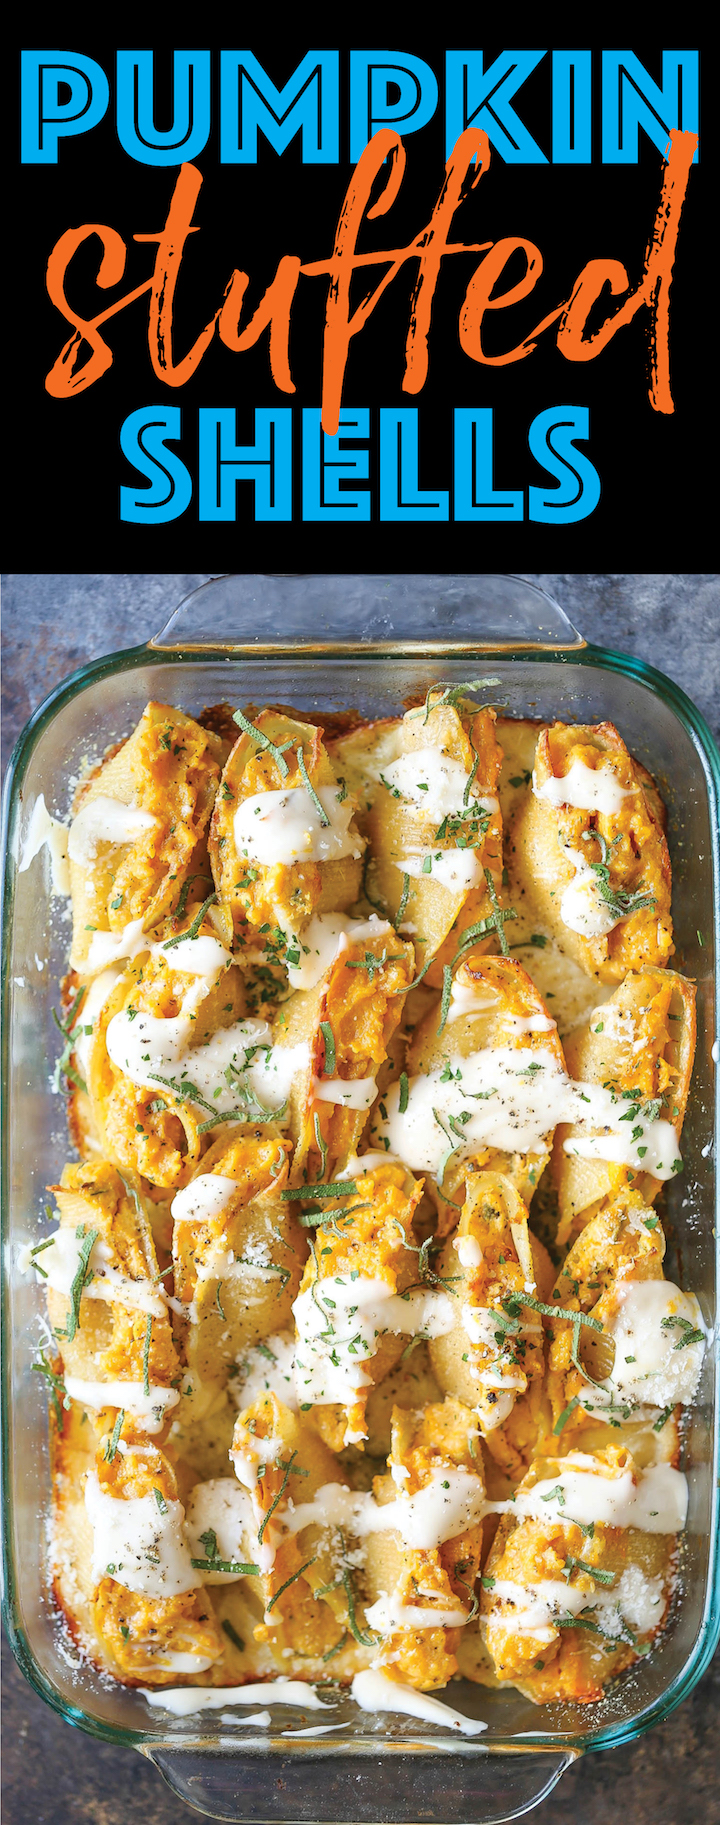 Pumpkin Stuffed Shells - Luxuriously creamy, rich and comforting with the most epic garlic parmesan cream sauce that you'll want to put on everything!